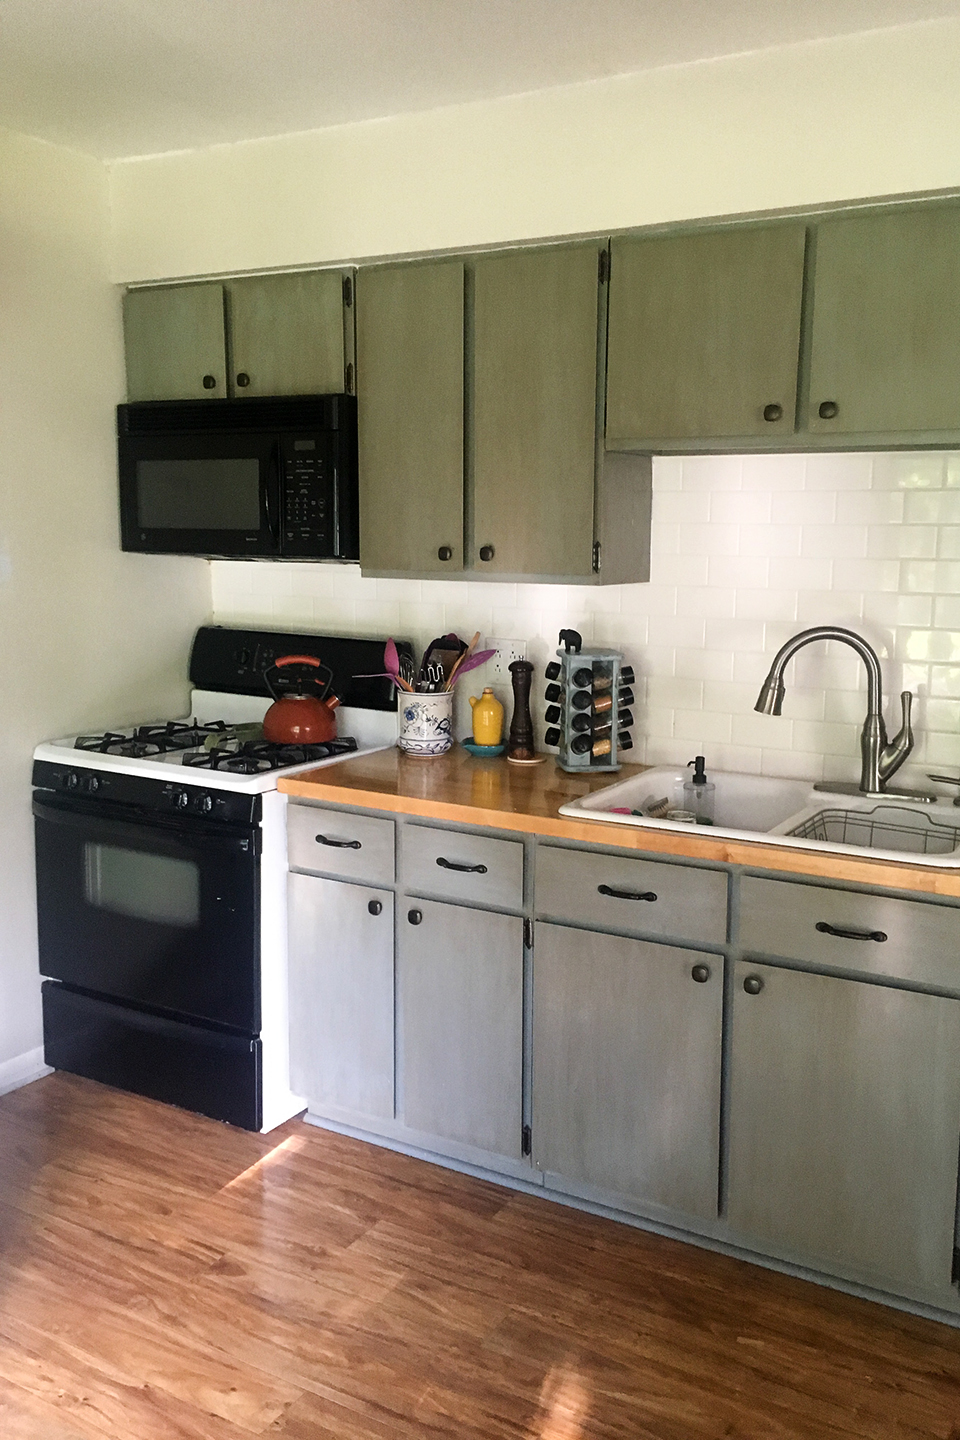 Kitchen Remodel On A Budget 5 Low Cost